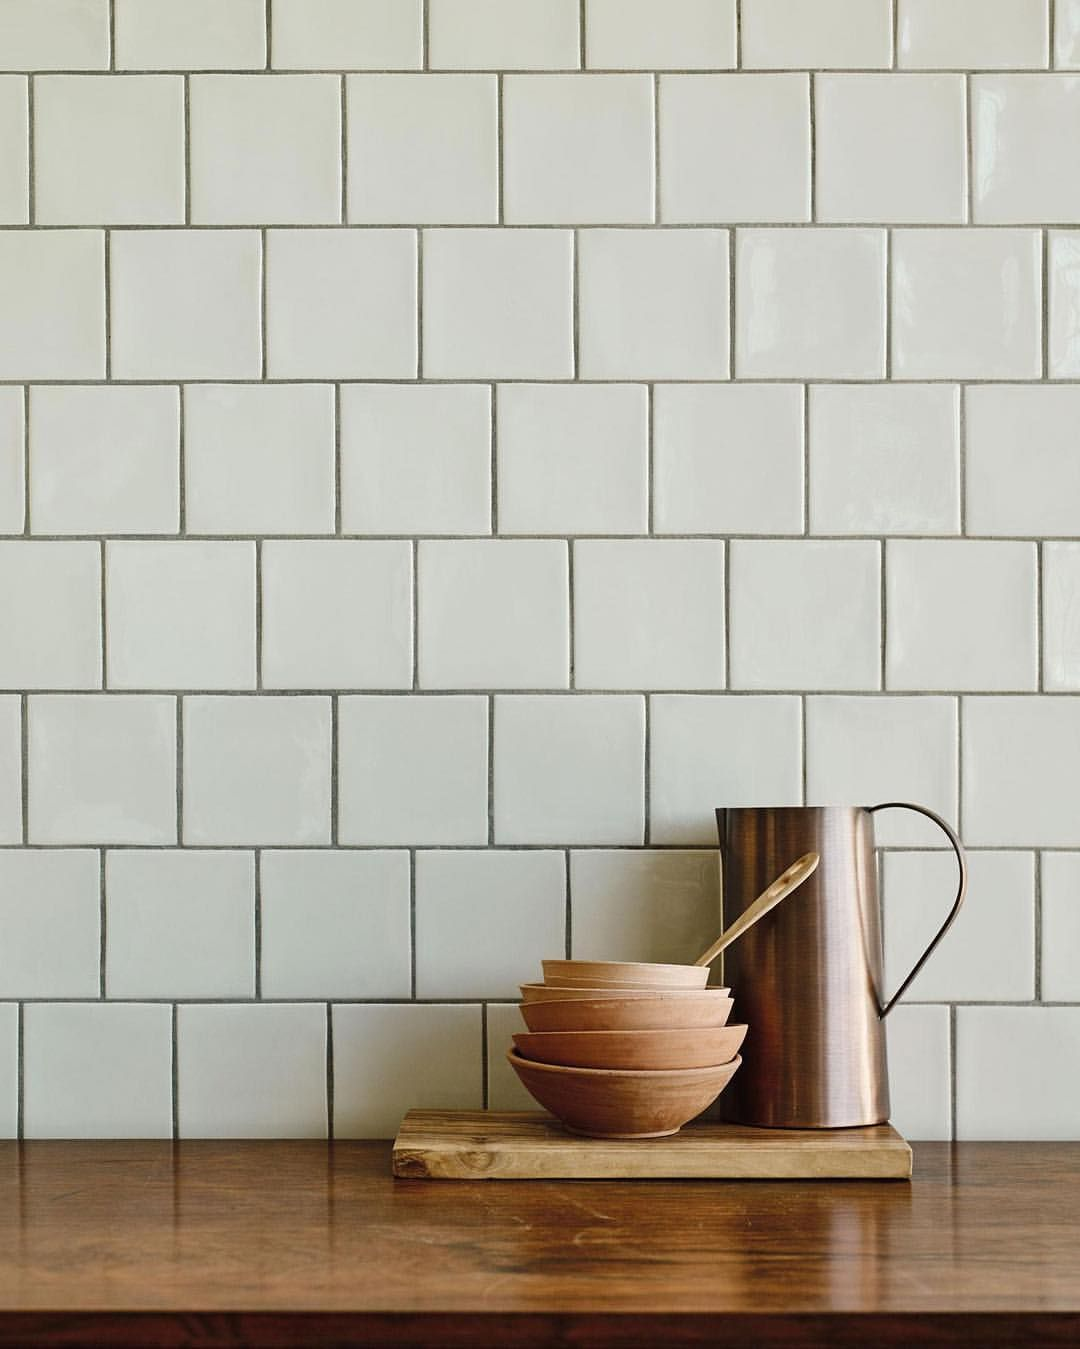 Claybrook Coastal Glaze West Lake Kitchen Tiles Wall And Floor Tiles Kitchen Wall Tiles